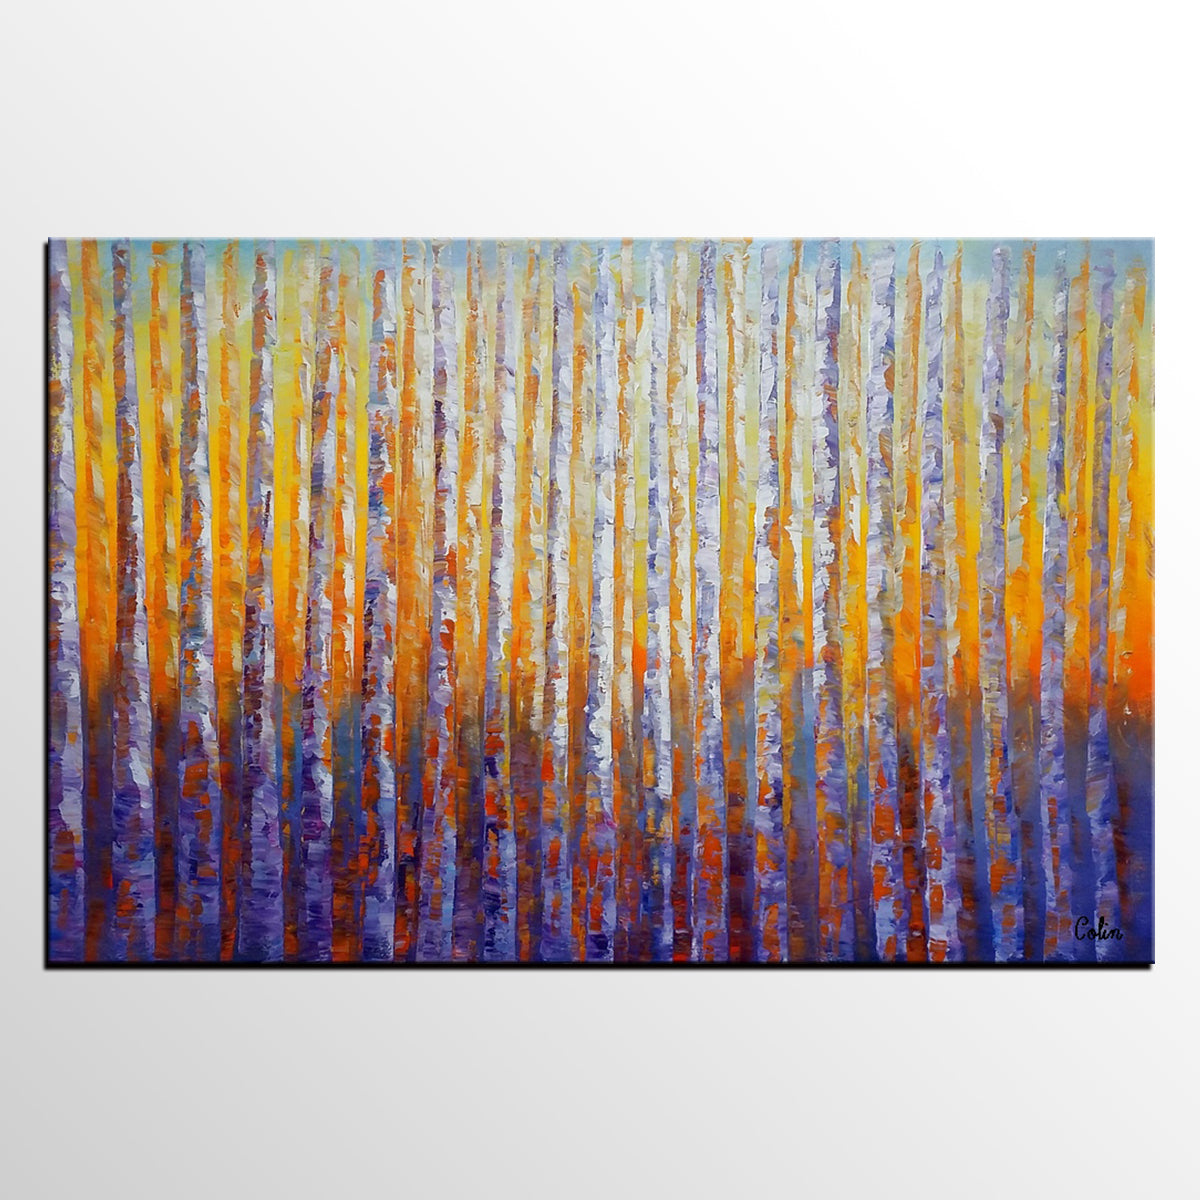 Birch Tree Painting, Oil Painting, Abstract Painting, Landscape Art, Modern Art, Canvas Art - artworkcanvas